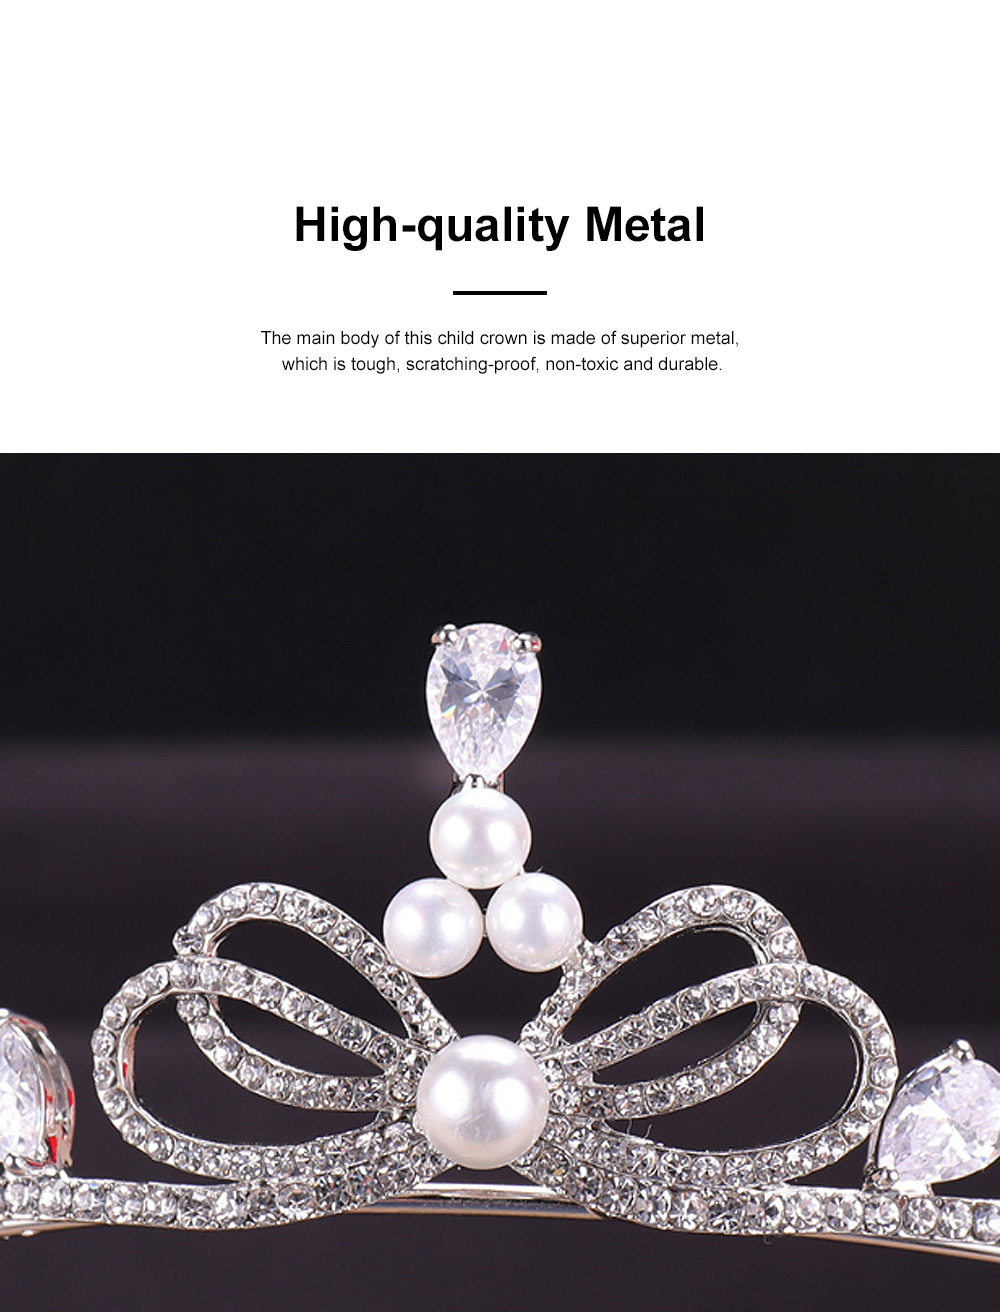 Fancy Delicate Artificial Pearl Rhinestone Decorative Crown, Evening Party Activity Baroque Style Children Hair Band for Girl 3